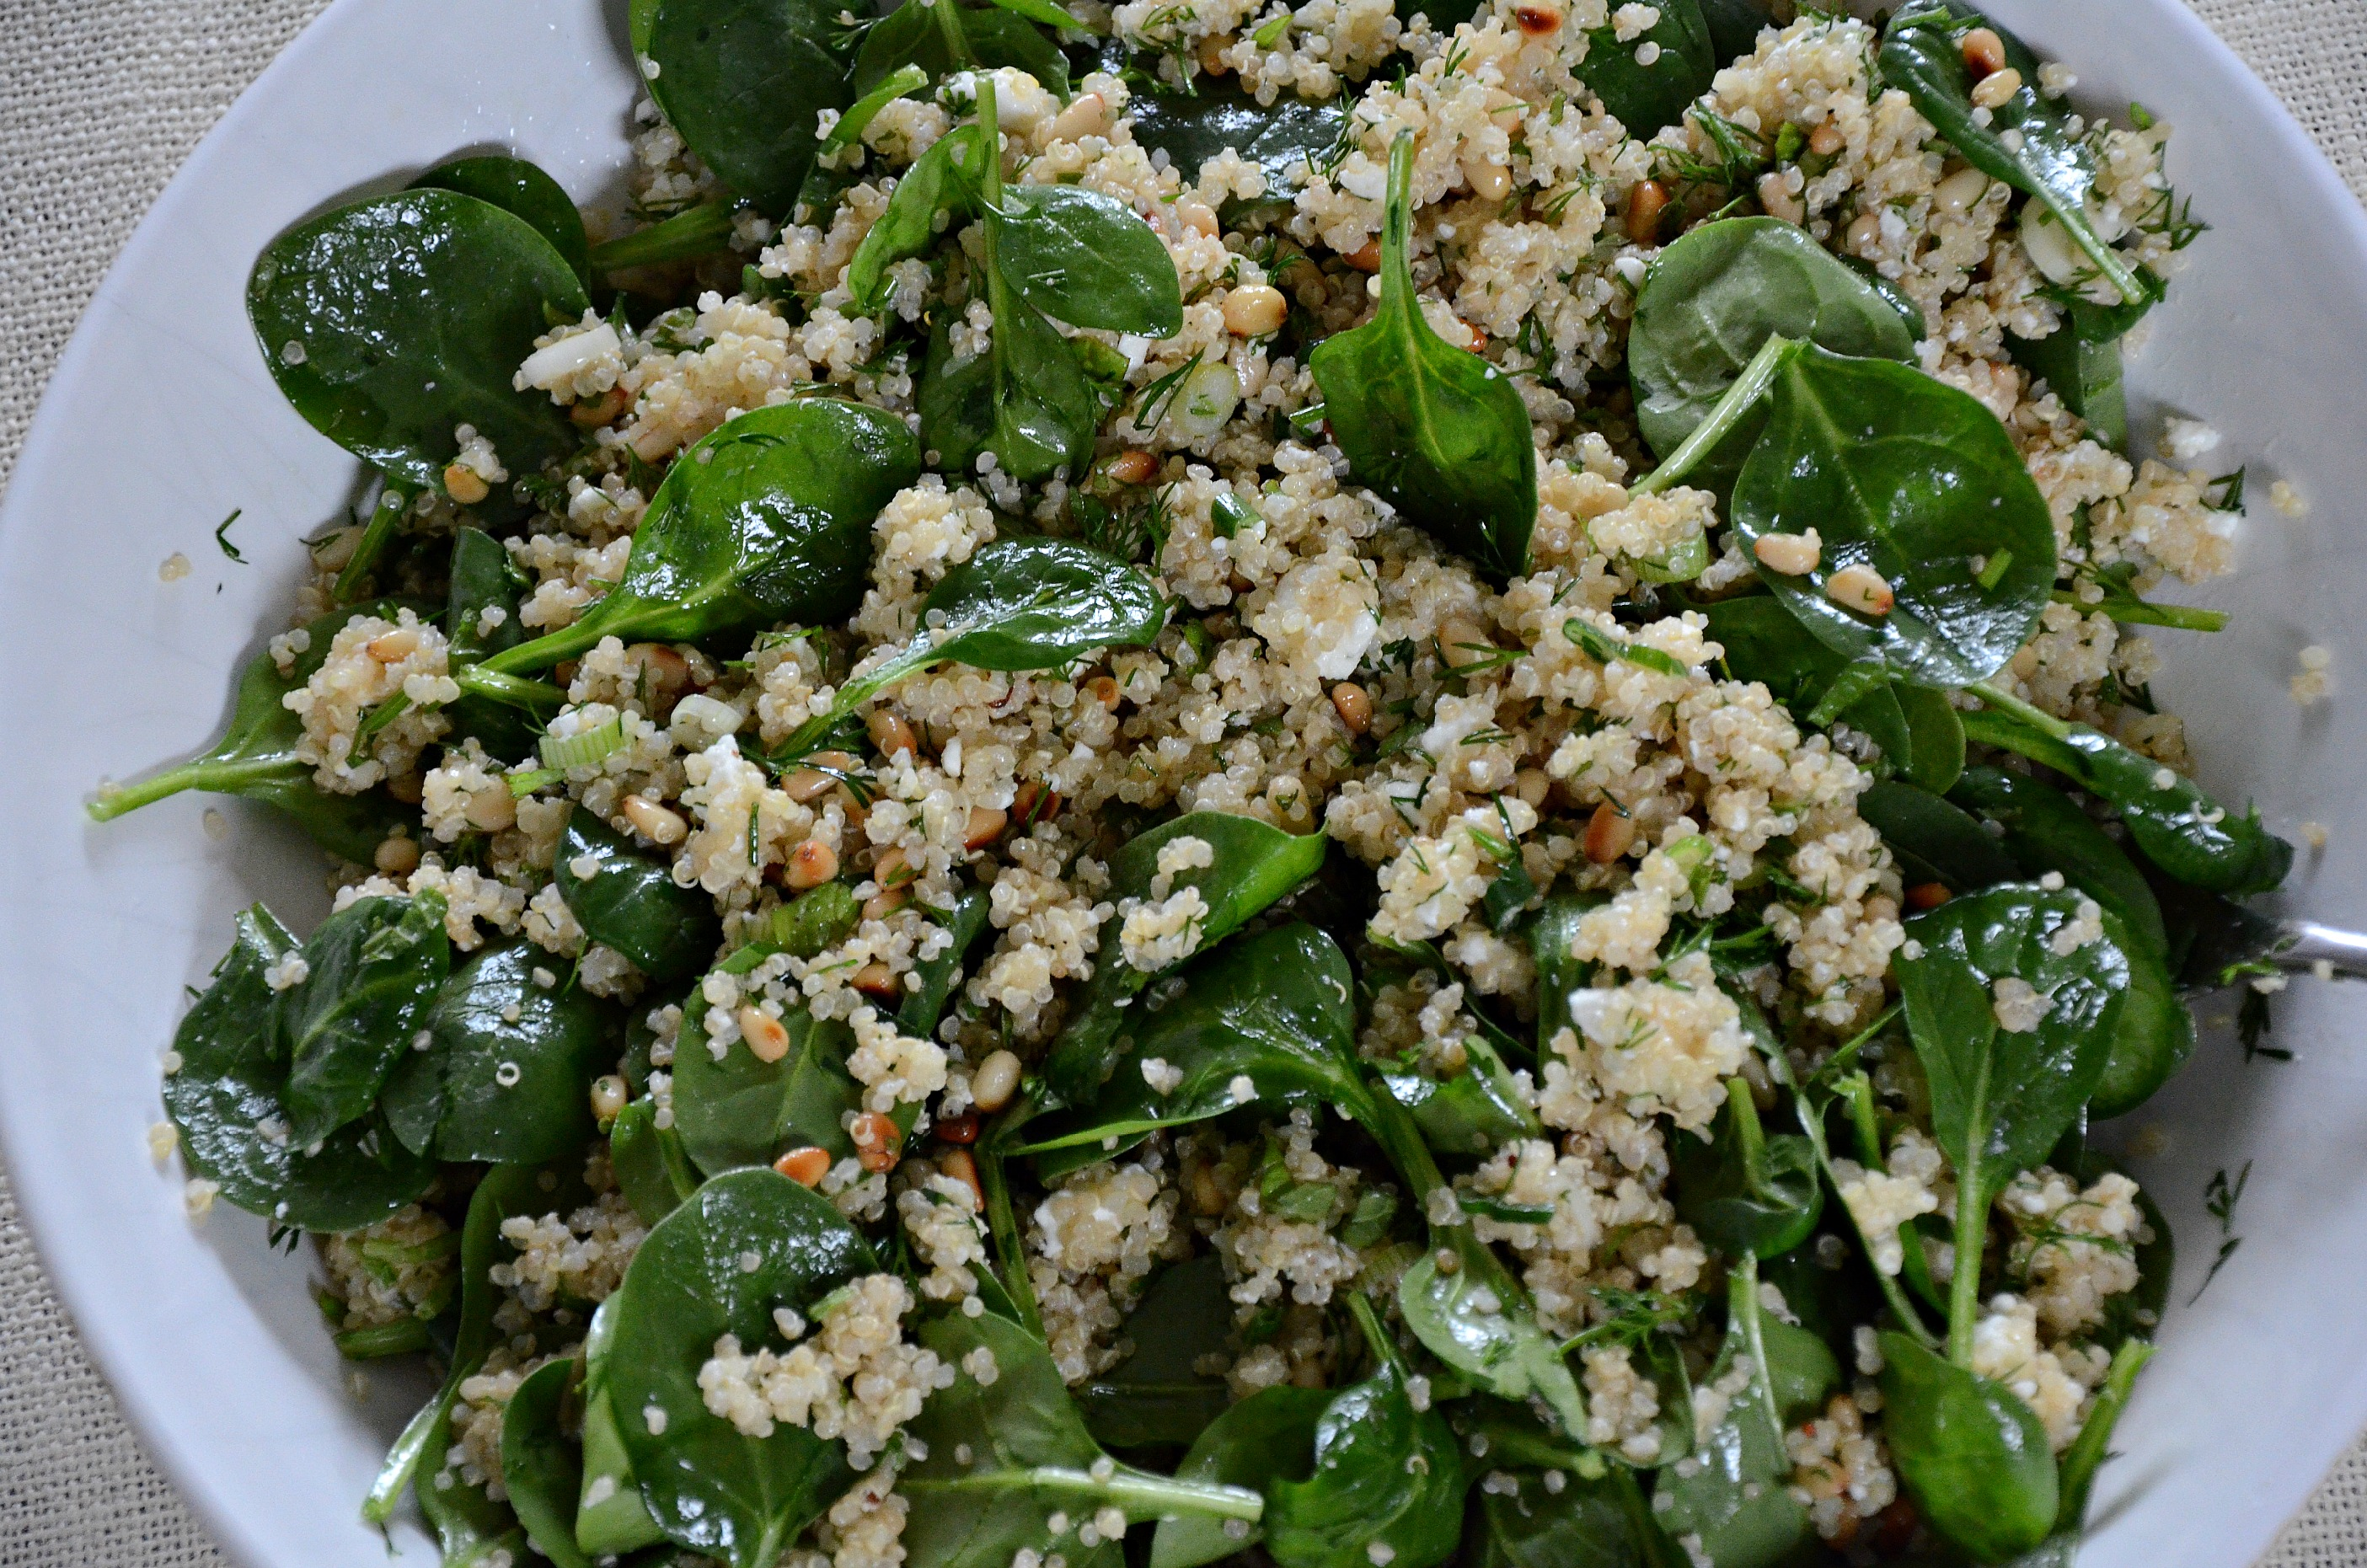 Spinach & pesto quinoa salad | LH Lifestyle